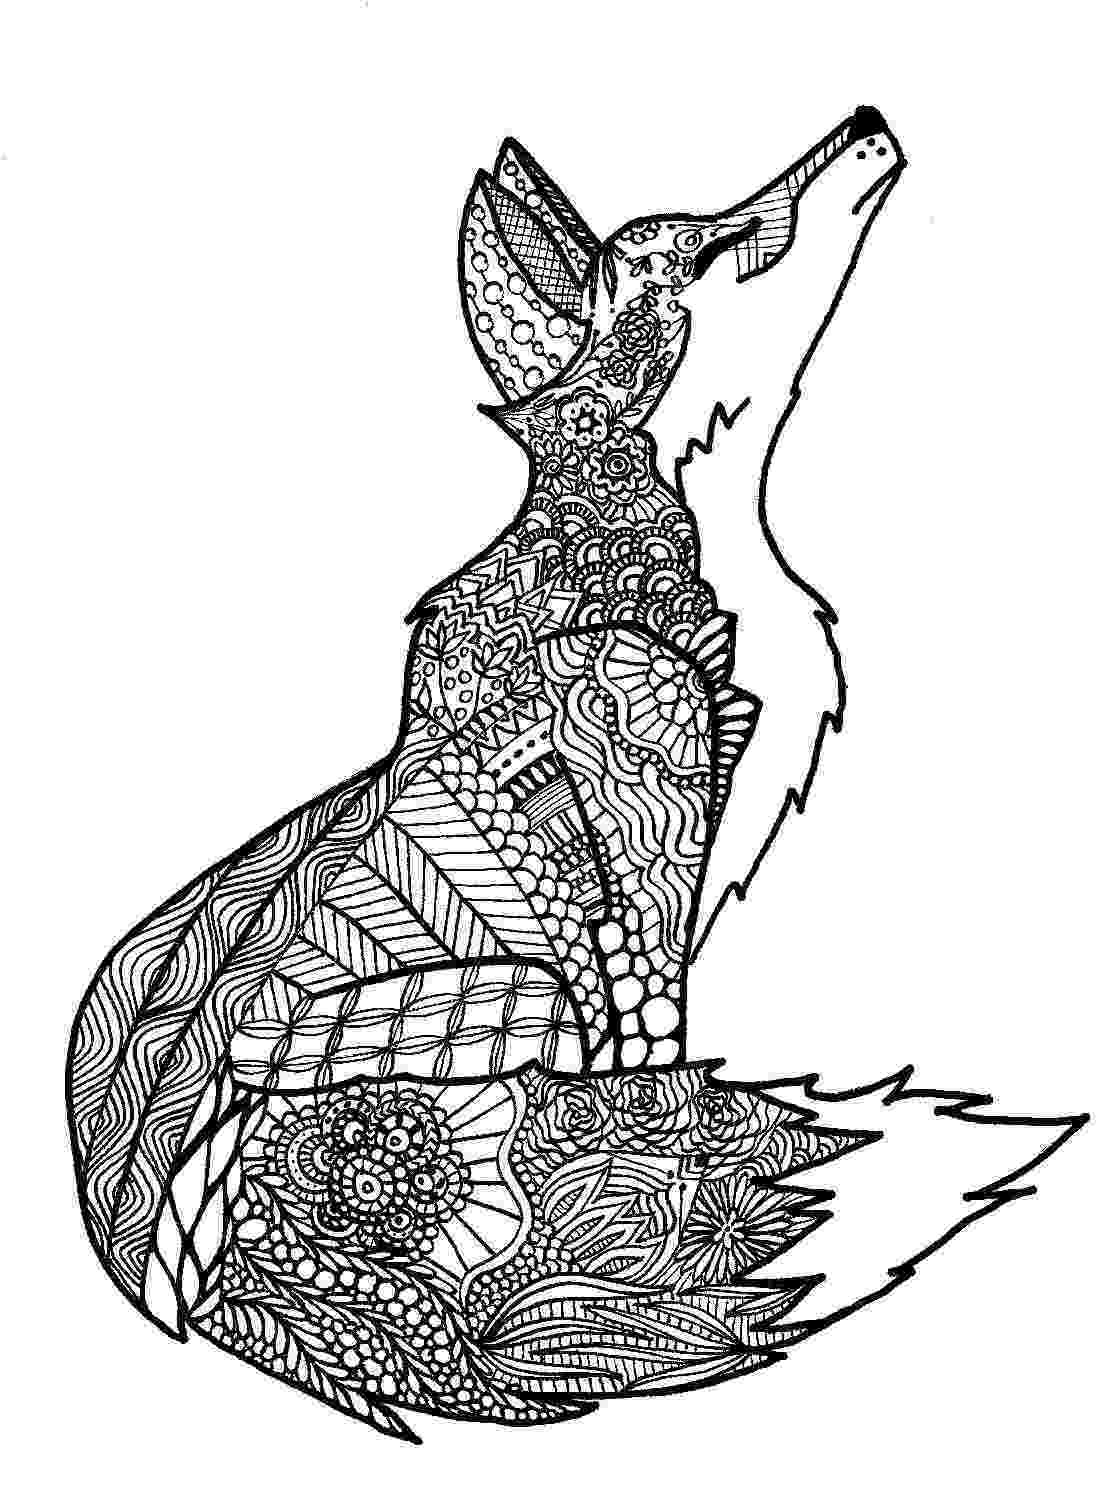 zentangle colouring pages animals zia eagle pro am crafts zentangle animals pages colouring